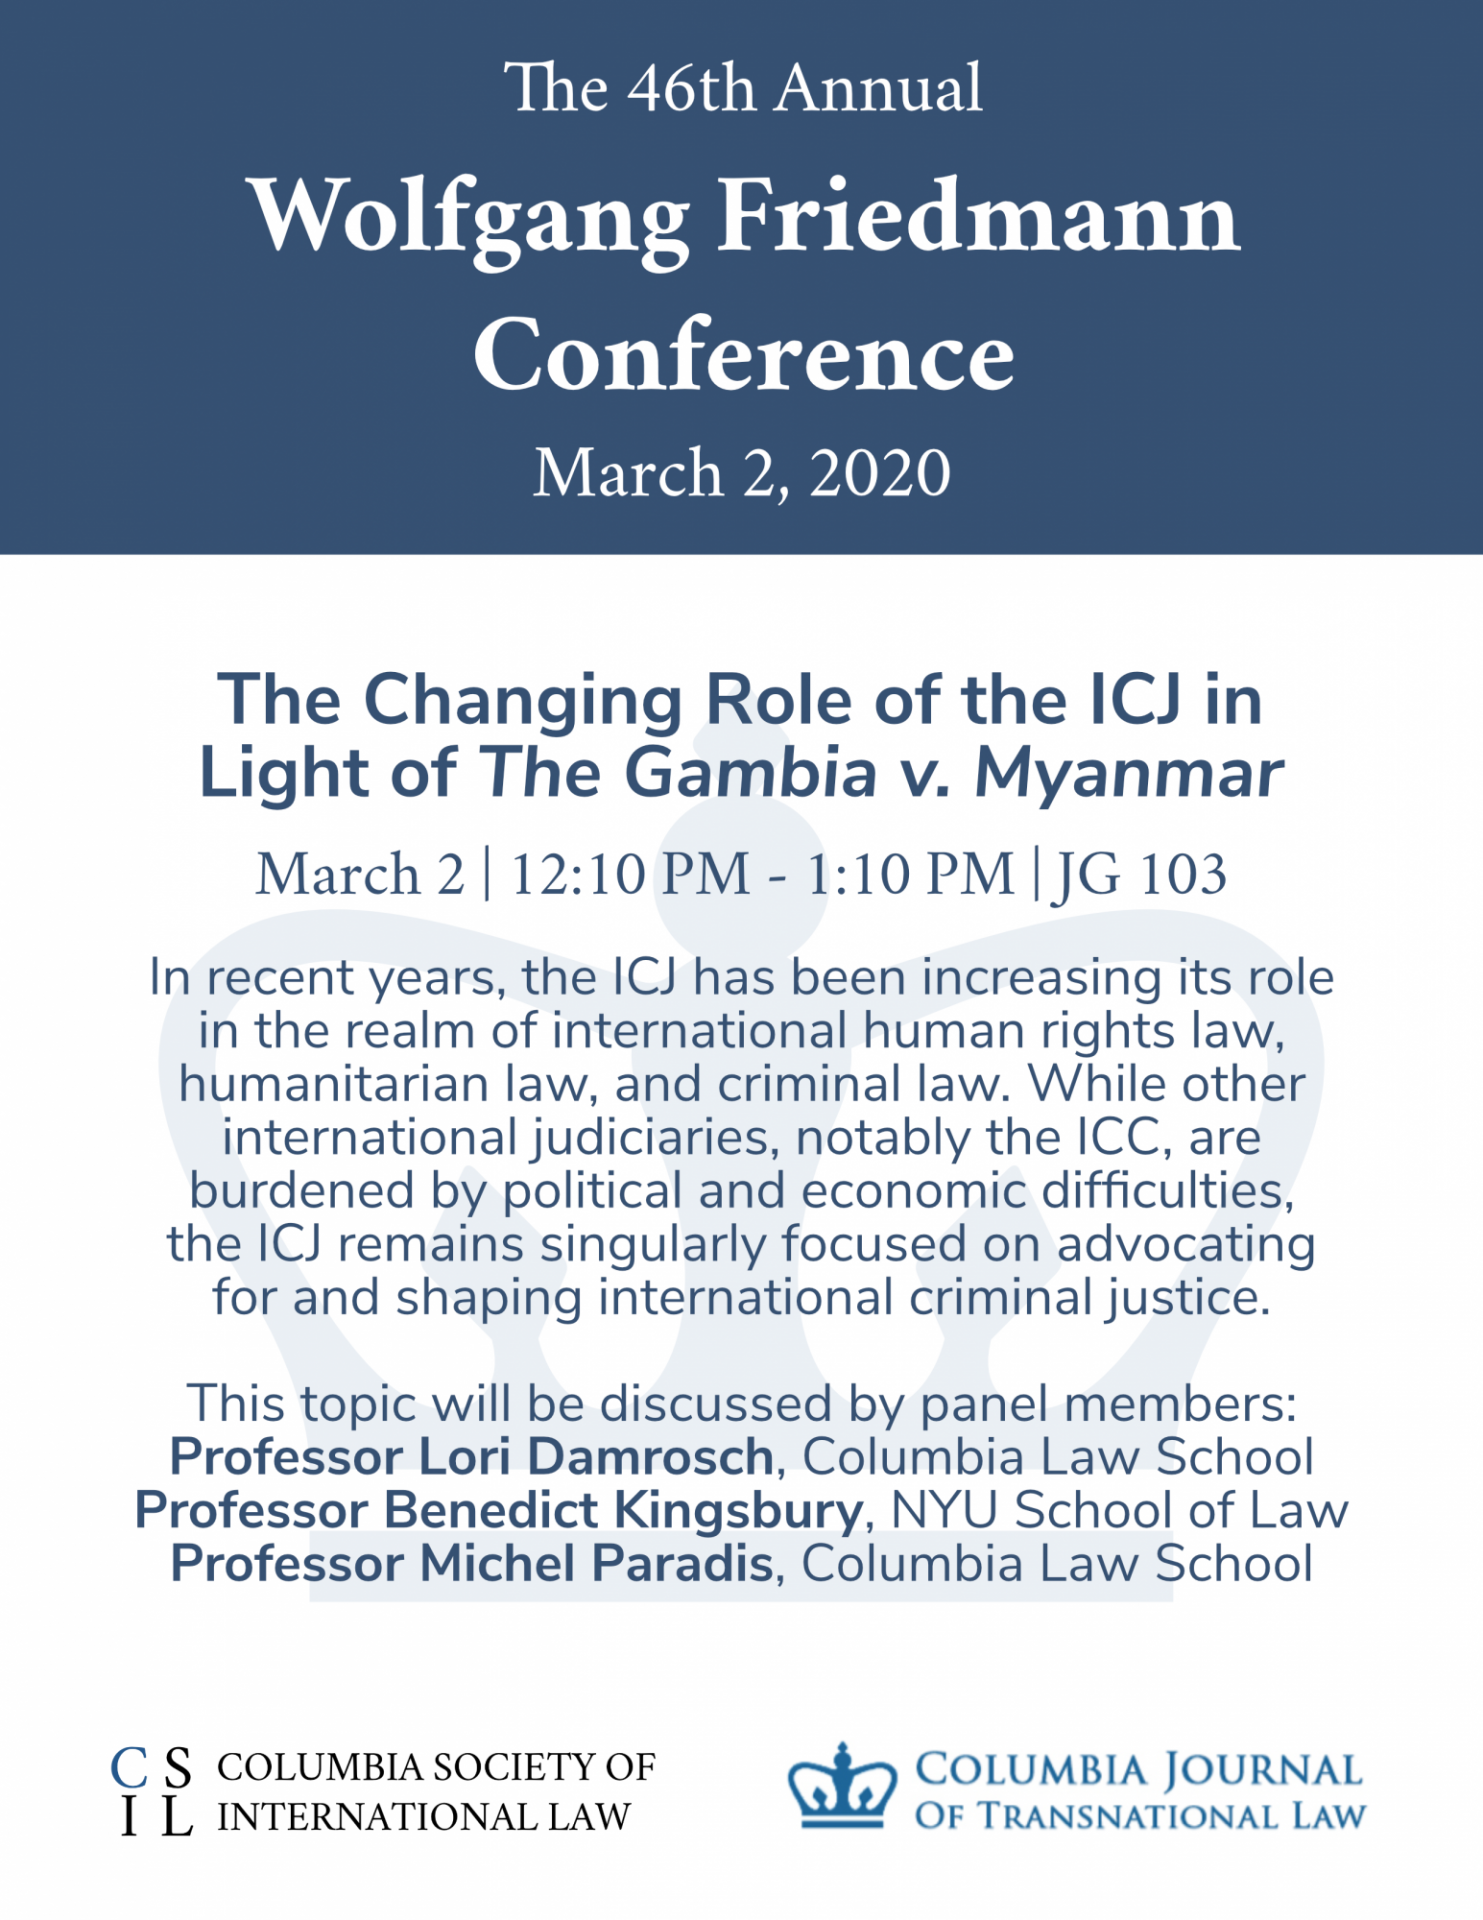 2020 Friedmann Conference — The Changing Role of the ICJ in Light of The Gambia v. Myanmar